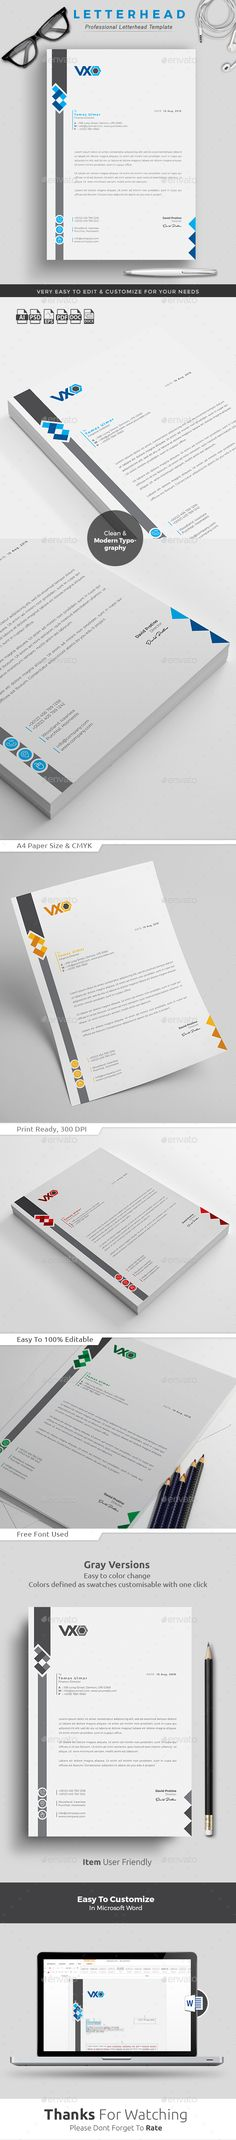 Letterhead Adobe photoshop, Popular and Stationery - free business letterhead templates download